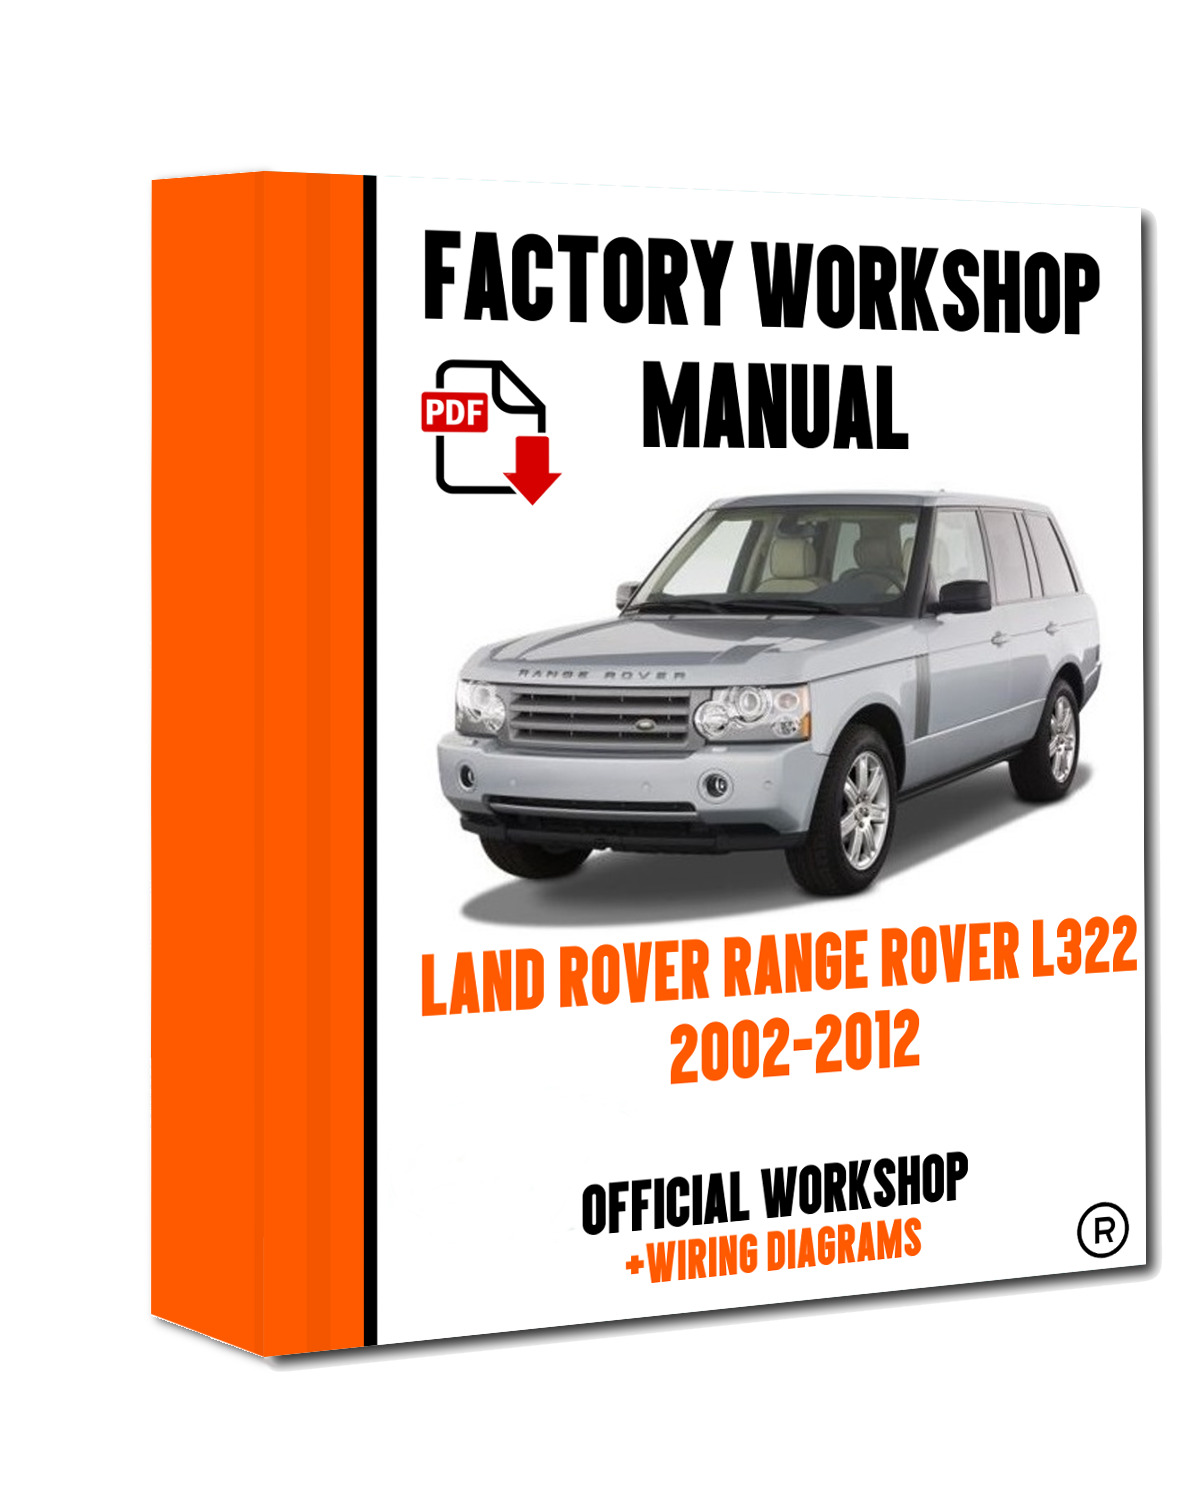 official workshop manual service repair land rover range rover l322 rh picclick it 2002 range rover rave manual 2002 land rover owners manual